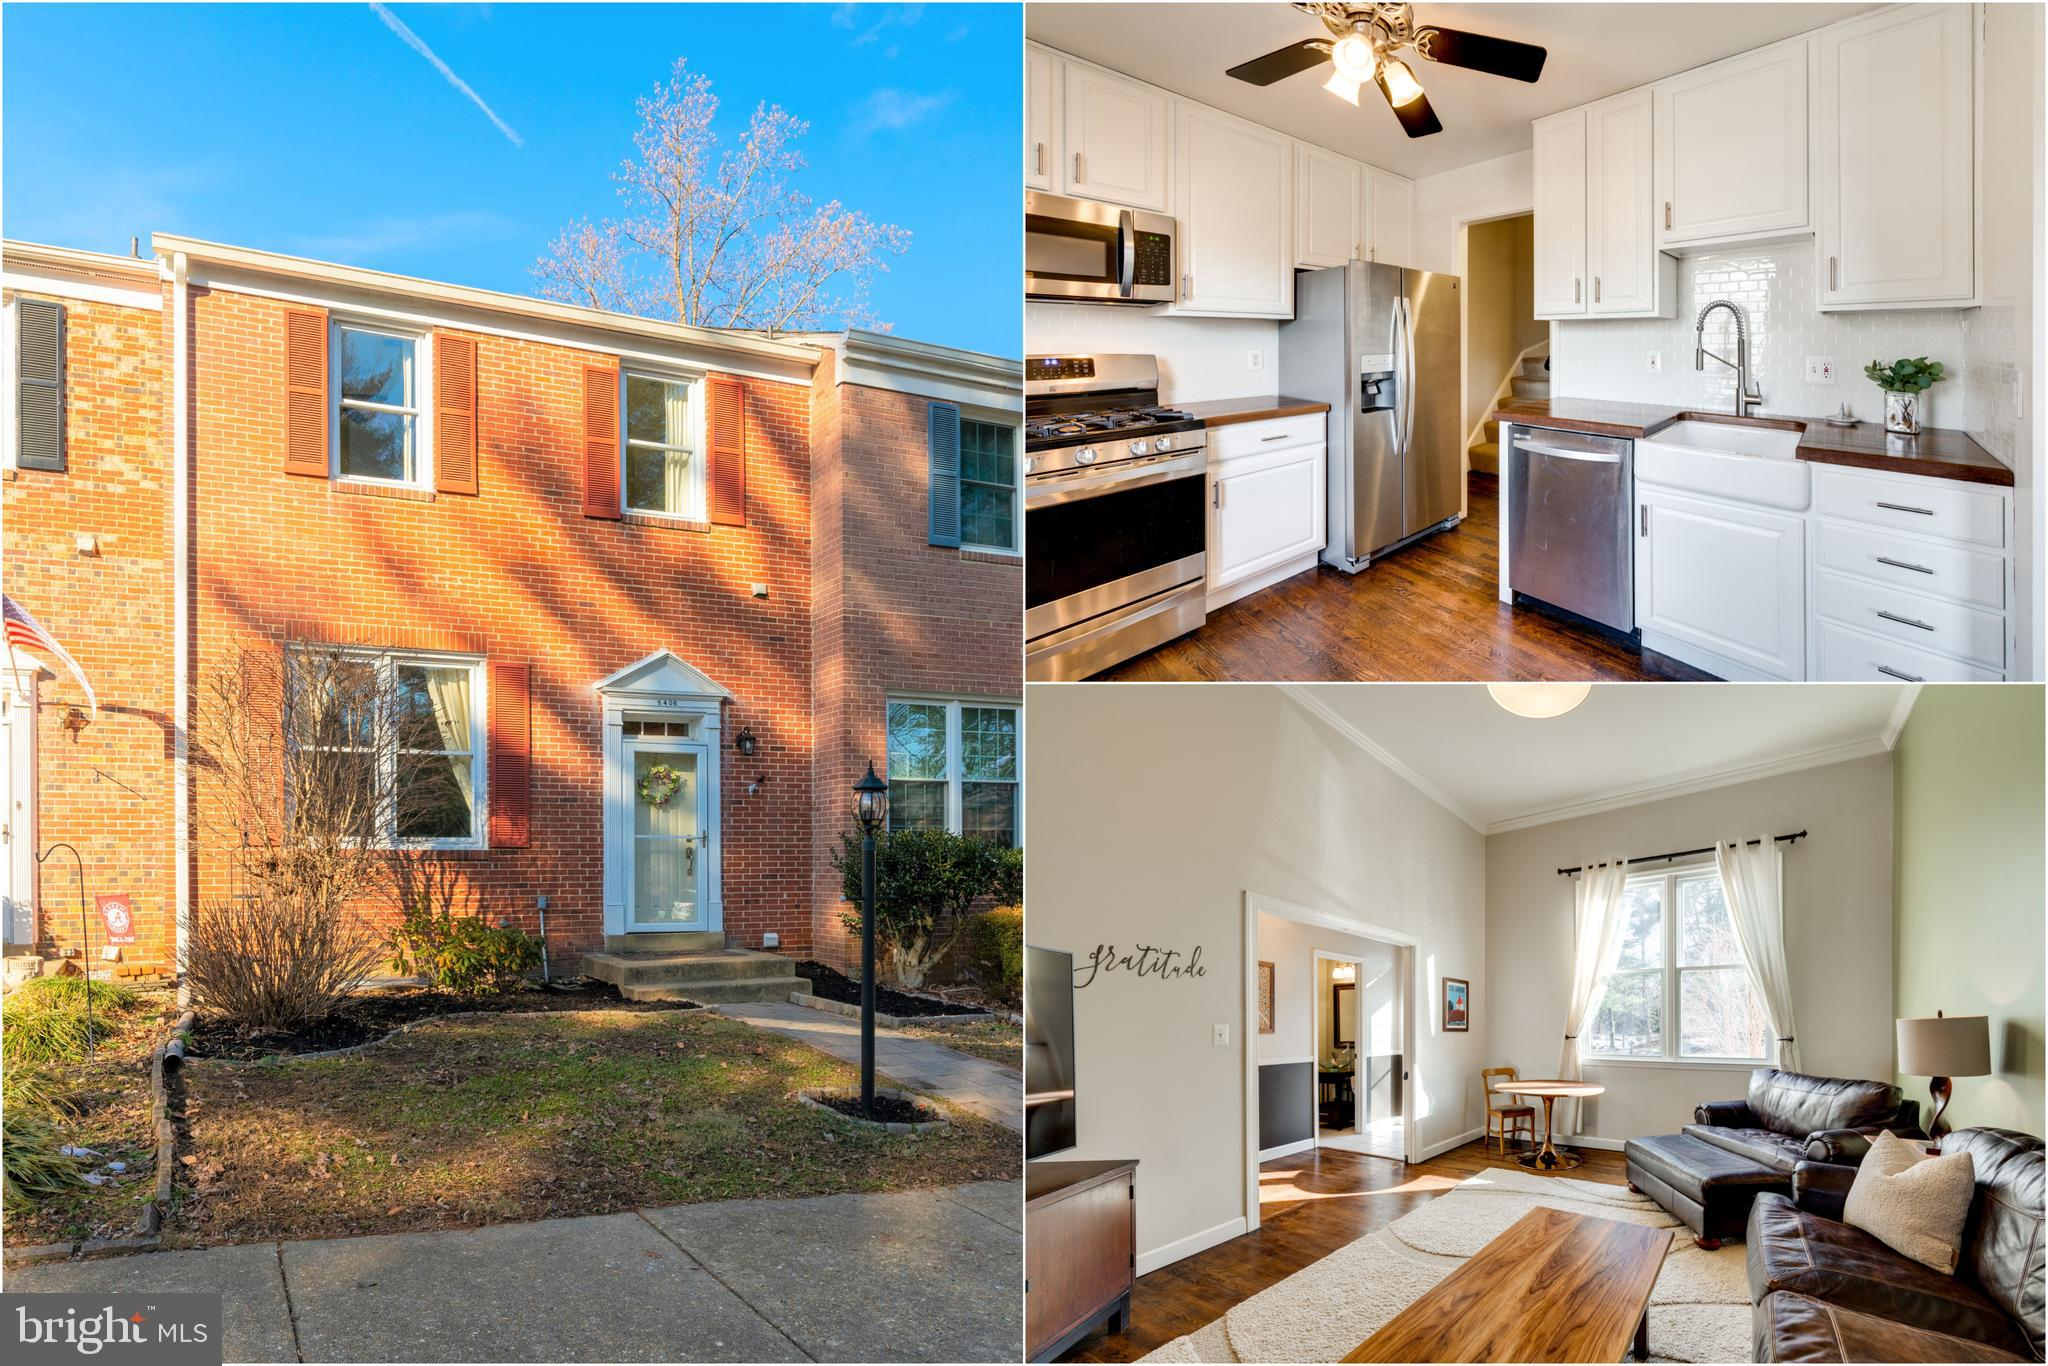 Beautifully Updated, Move-In Ready, Brick Town Home in Sought After Lake Braddock Community! From th